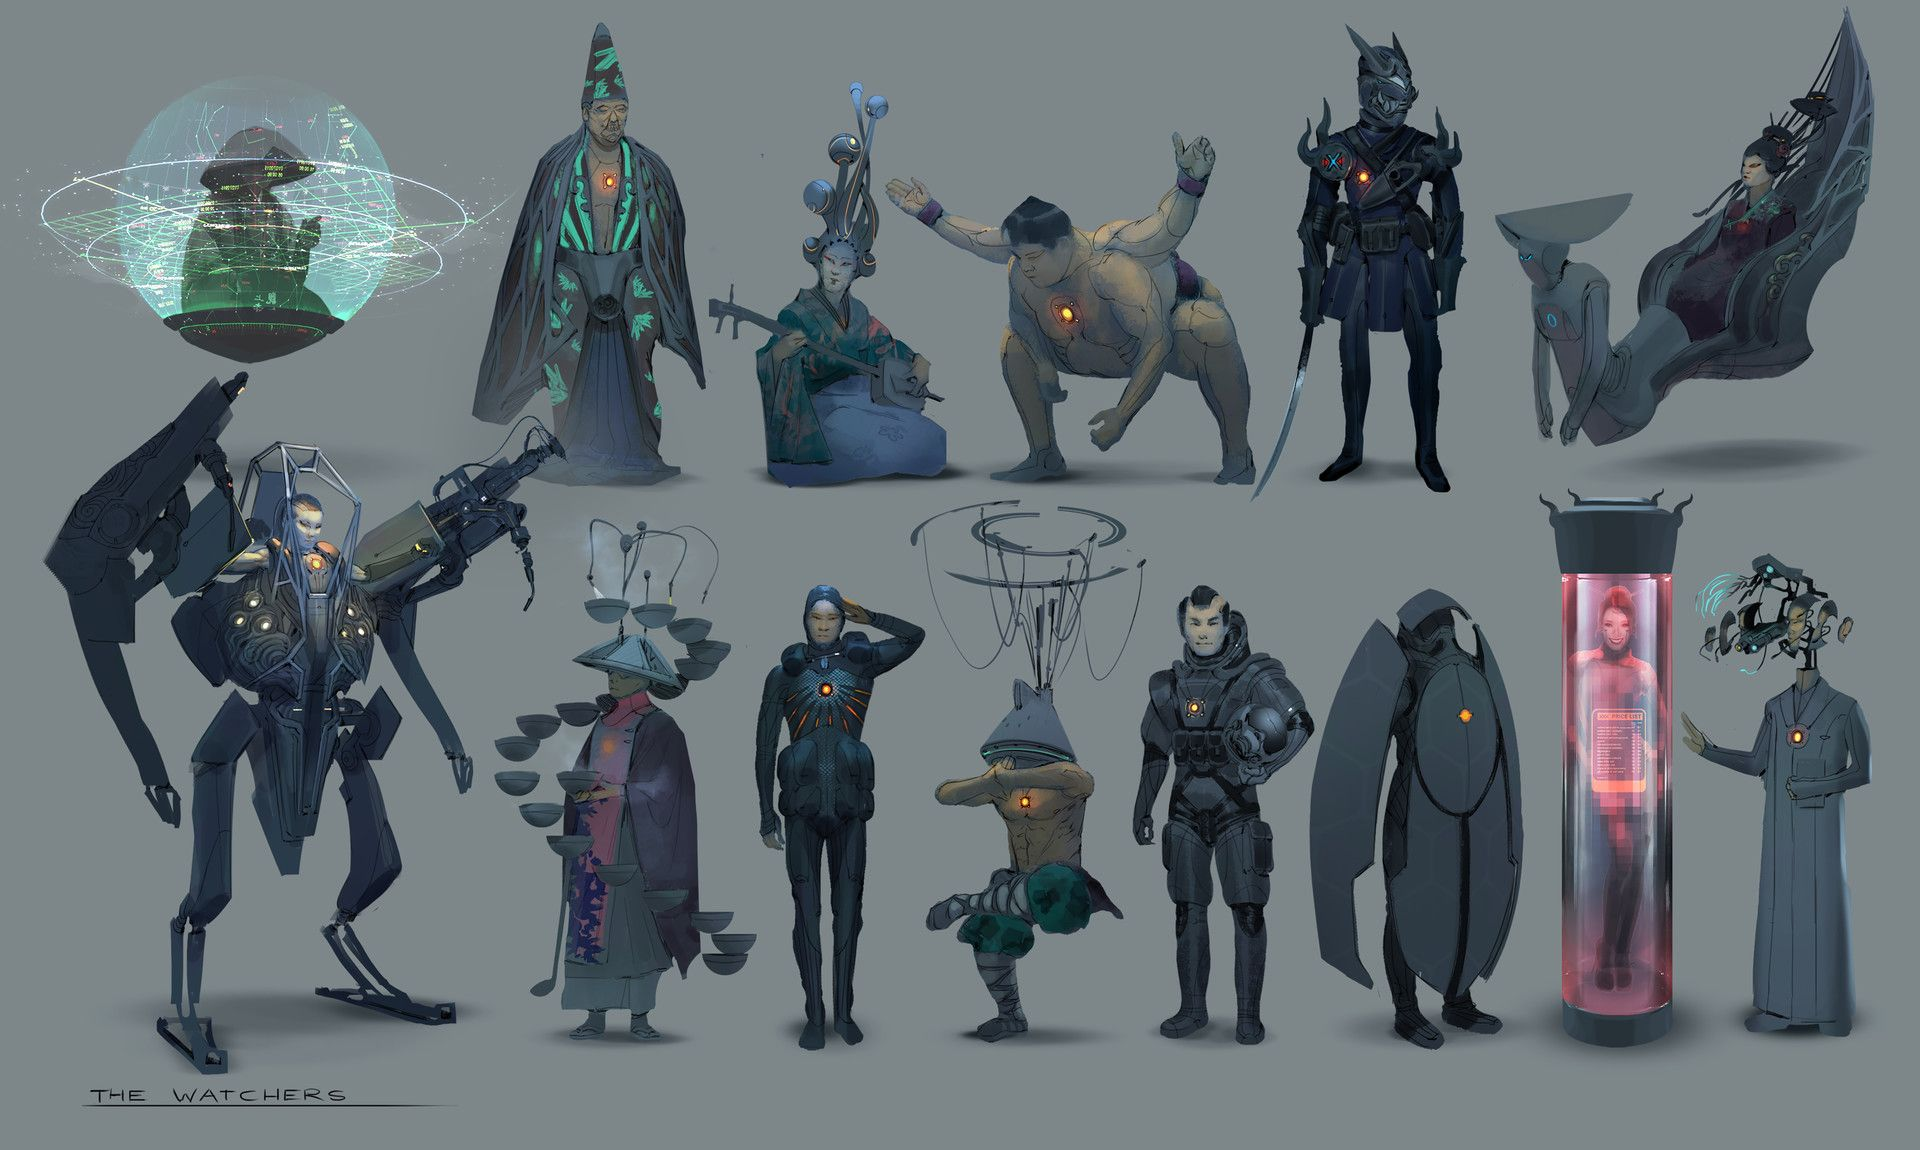 ArtStation - Project RISE color sketches, Simon Dubuc